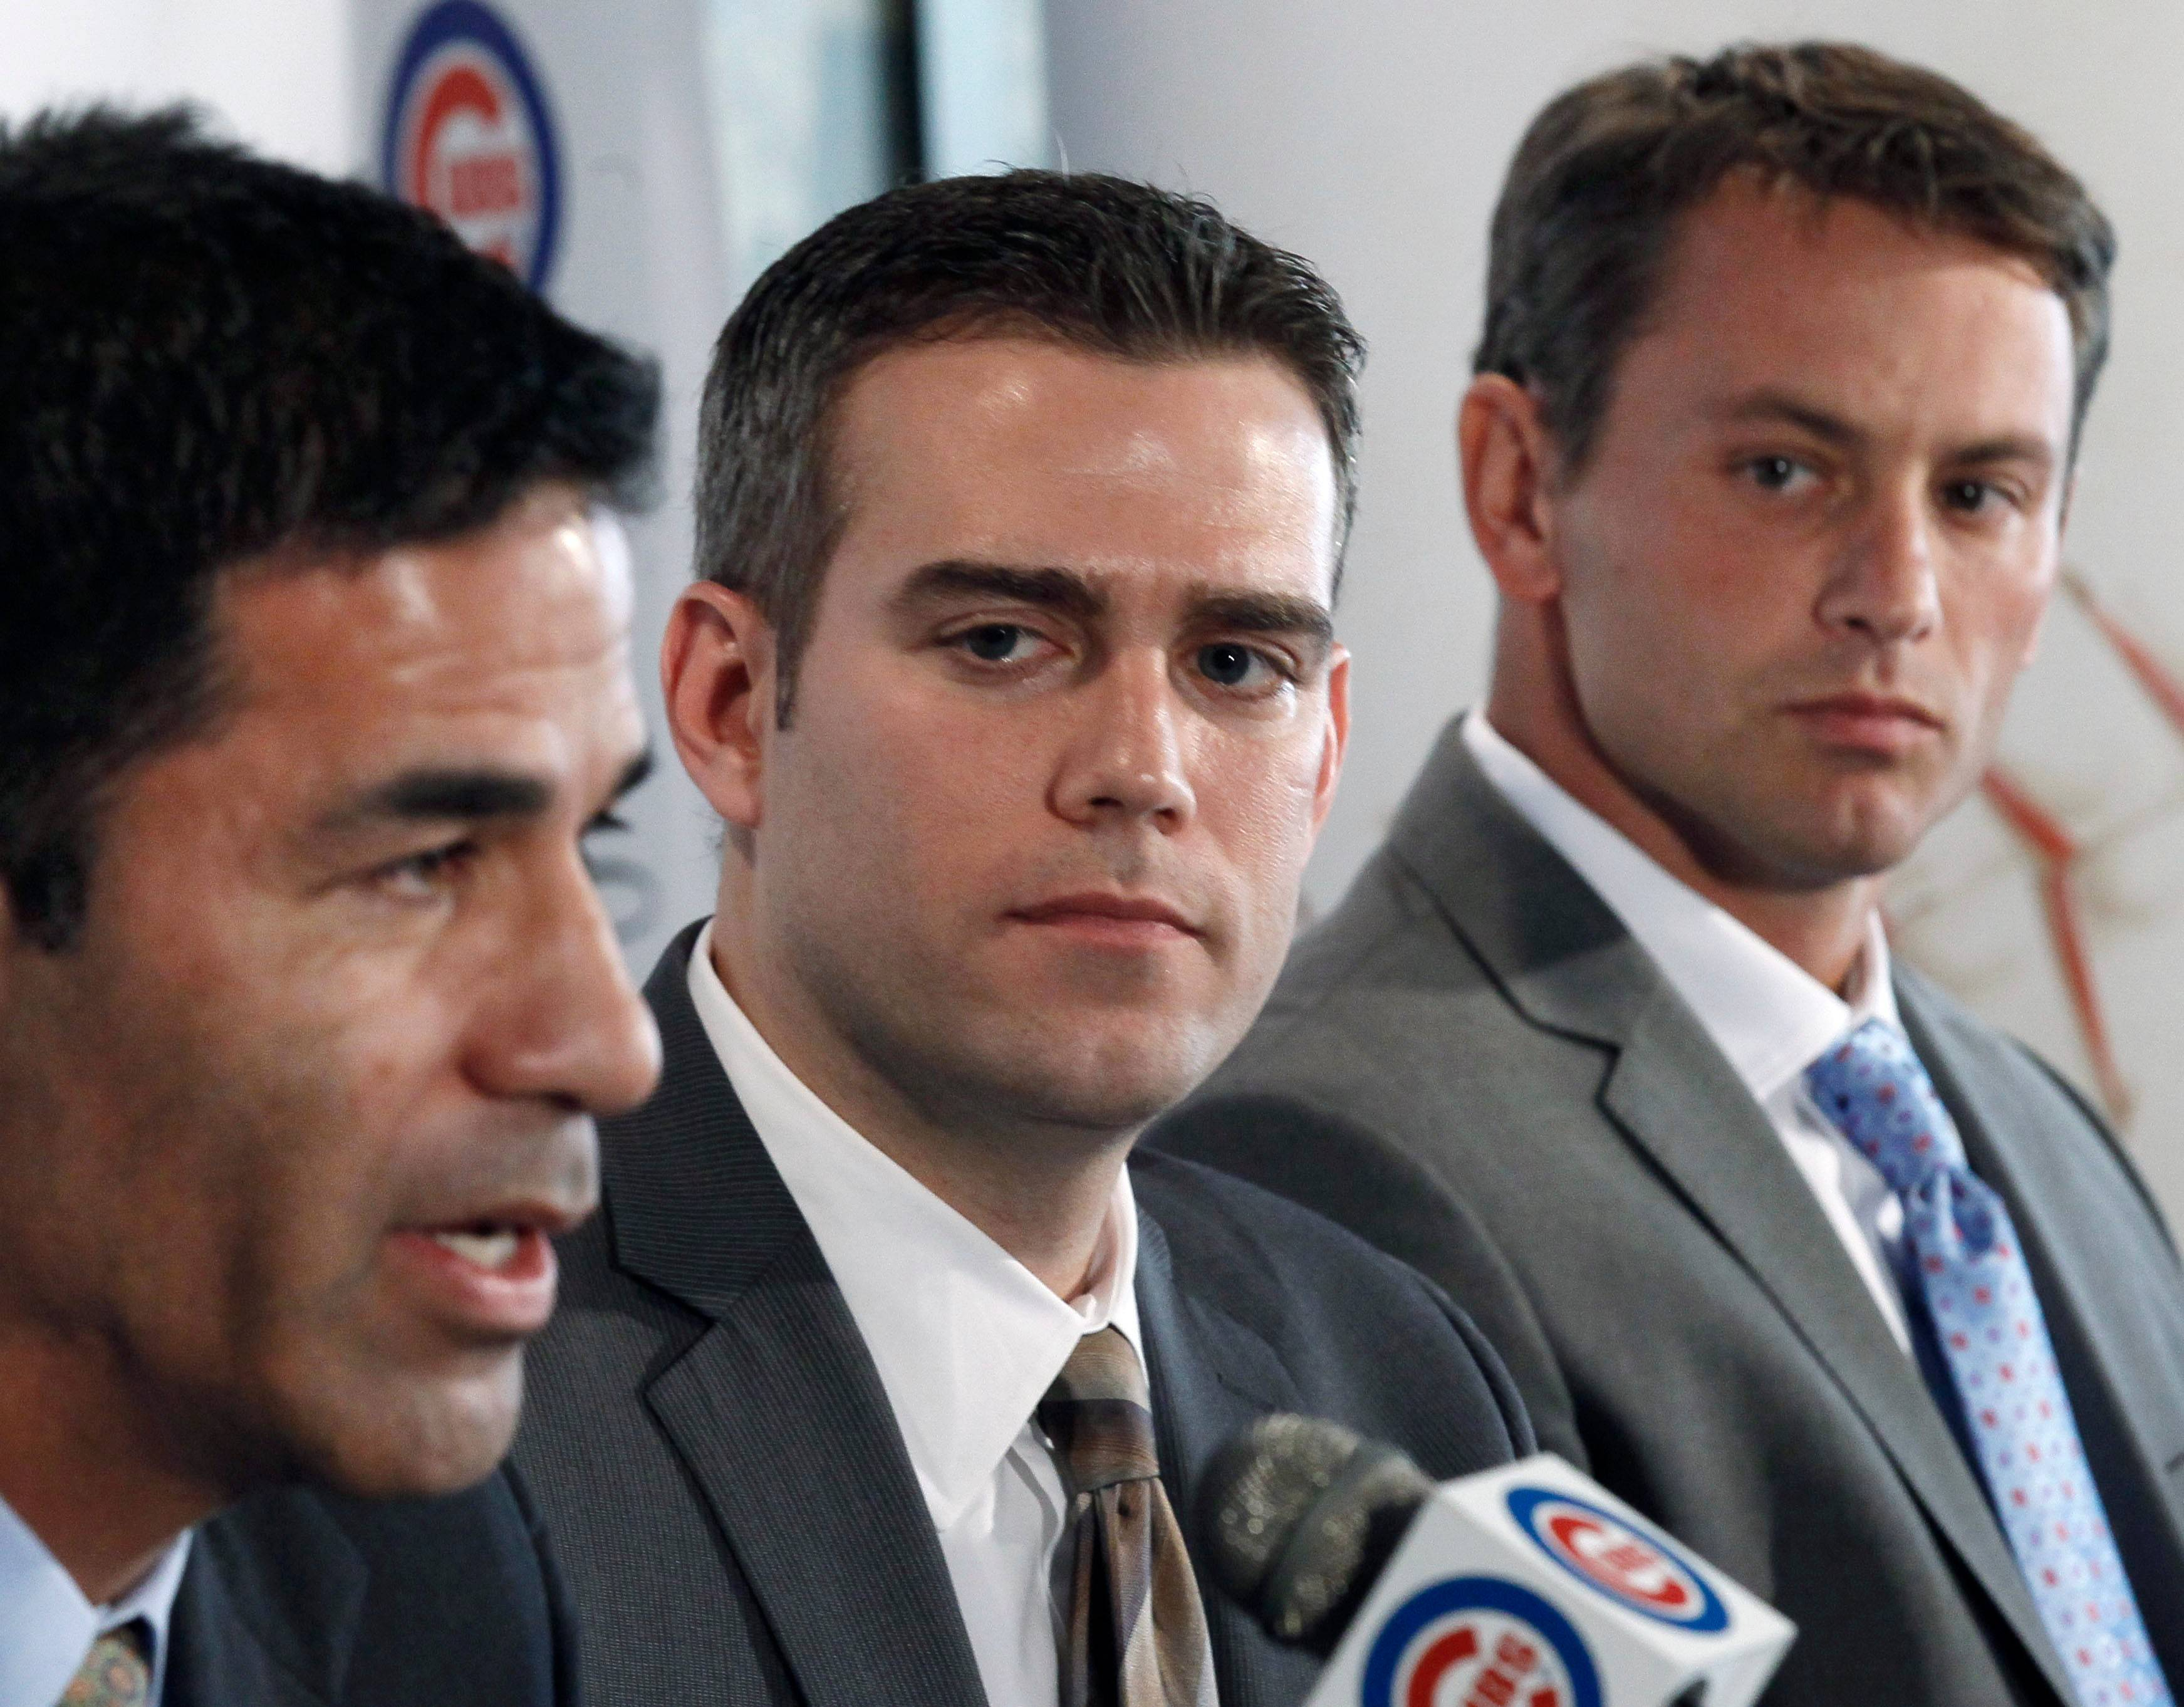 The Chicago Cubs have their front office in place after agreeing to five-year contract extensions with (from left) scouting and player development director Jason McLeod, president of baseball operations Theo Epstein, and general manager Jed Hoyer.